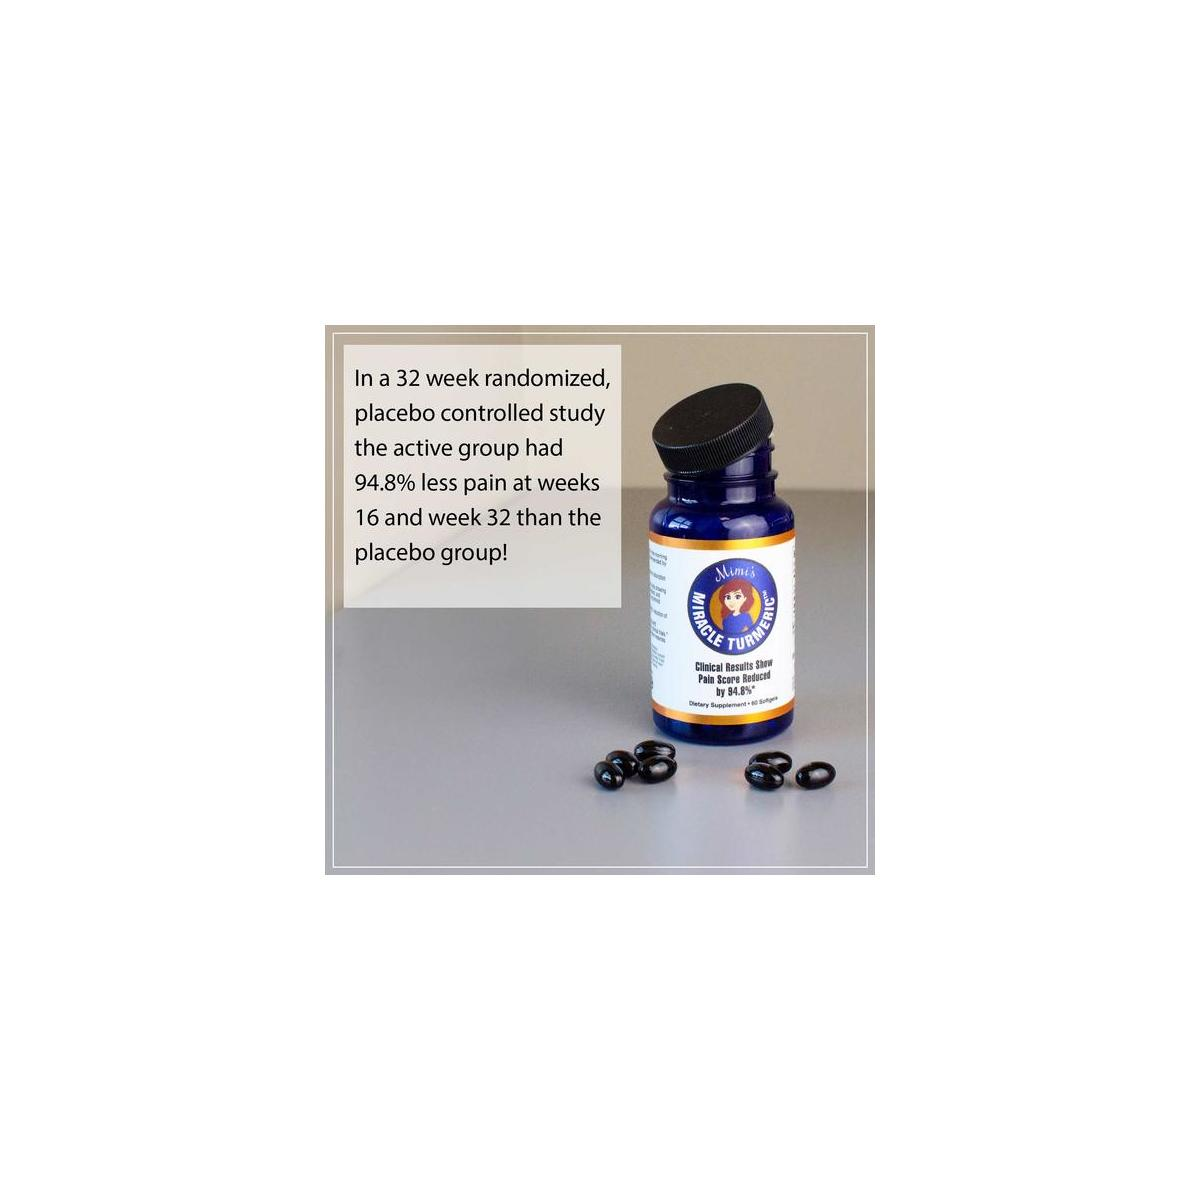 Mimi's Miracle Turmeric  - Clinically Proven to Reduce Inflammation & Pain